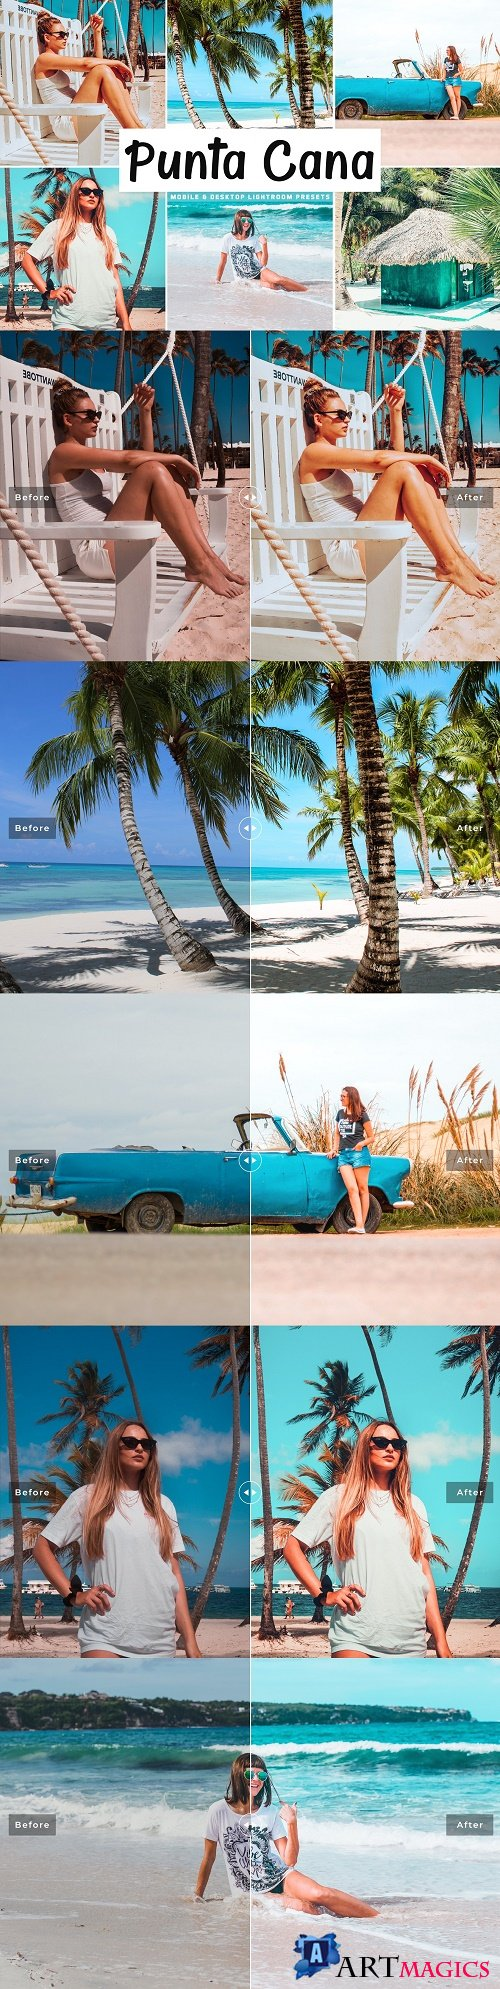 Punta Cana Lightroom Presets Pack - 4640204